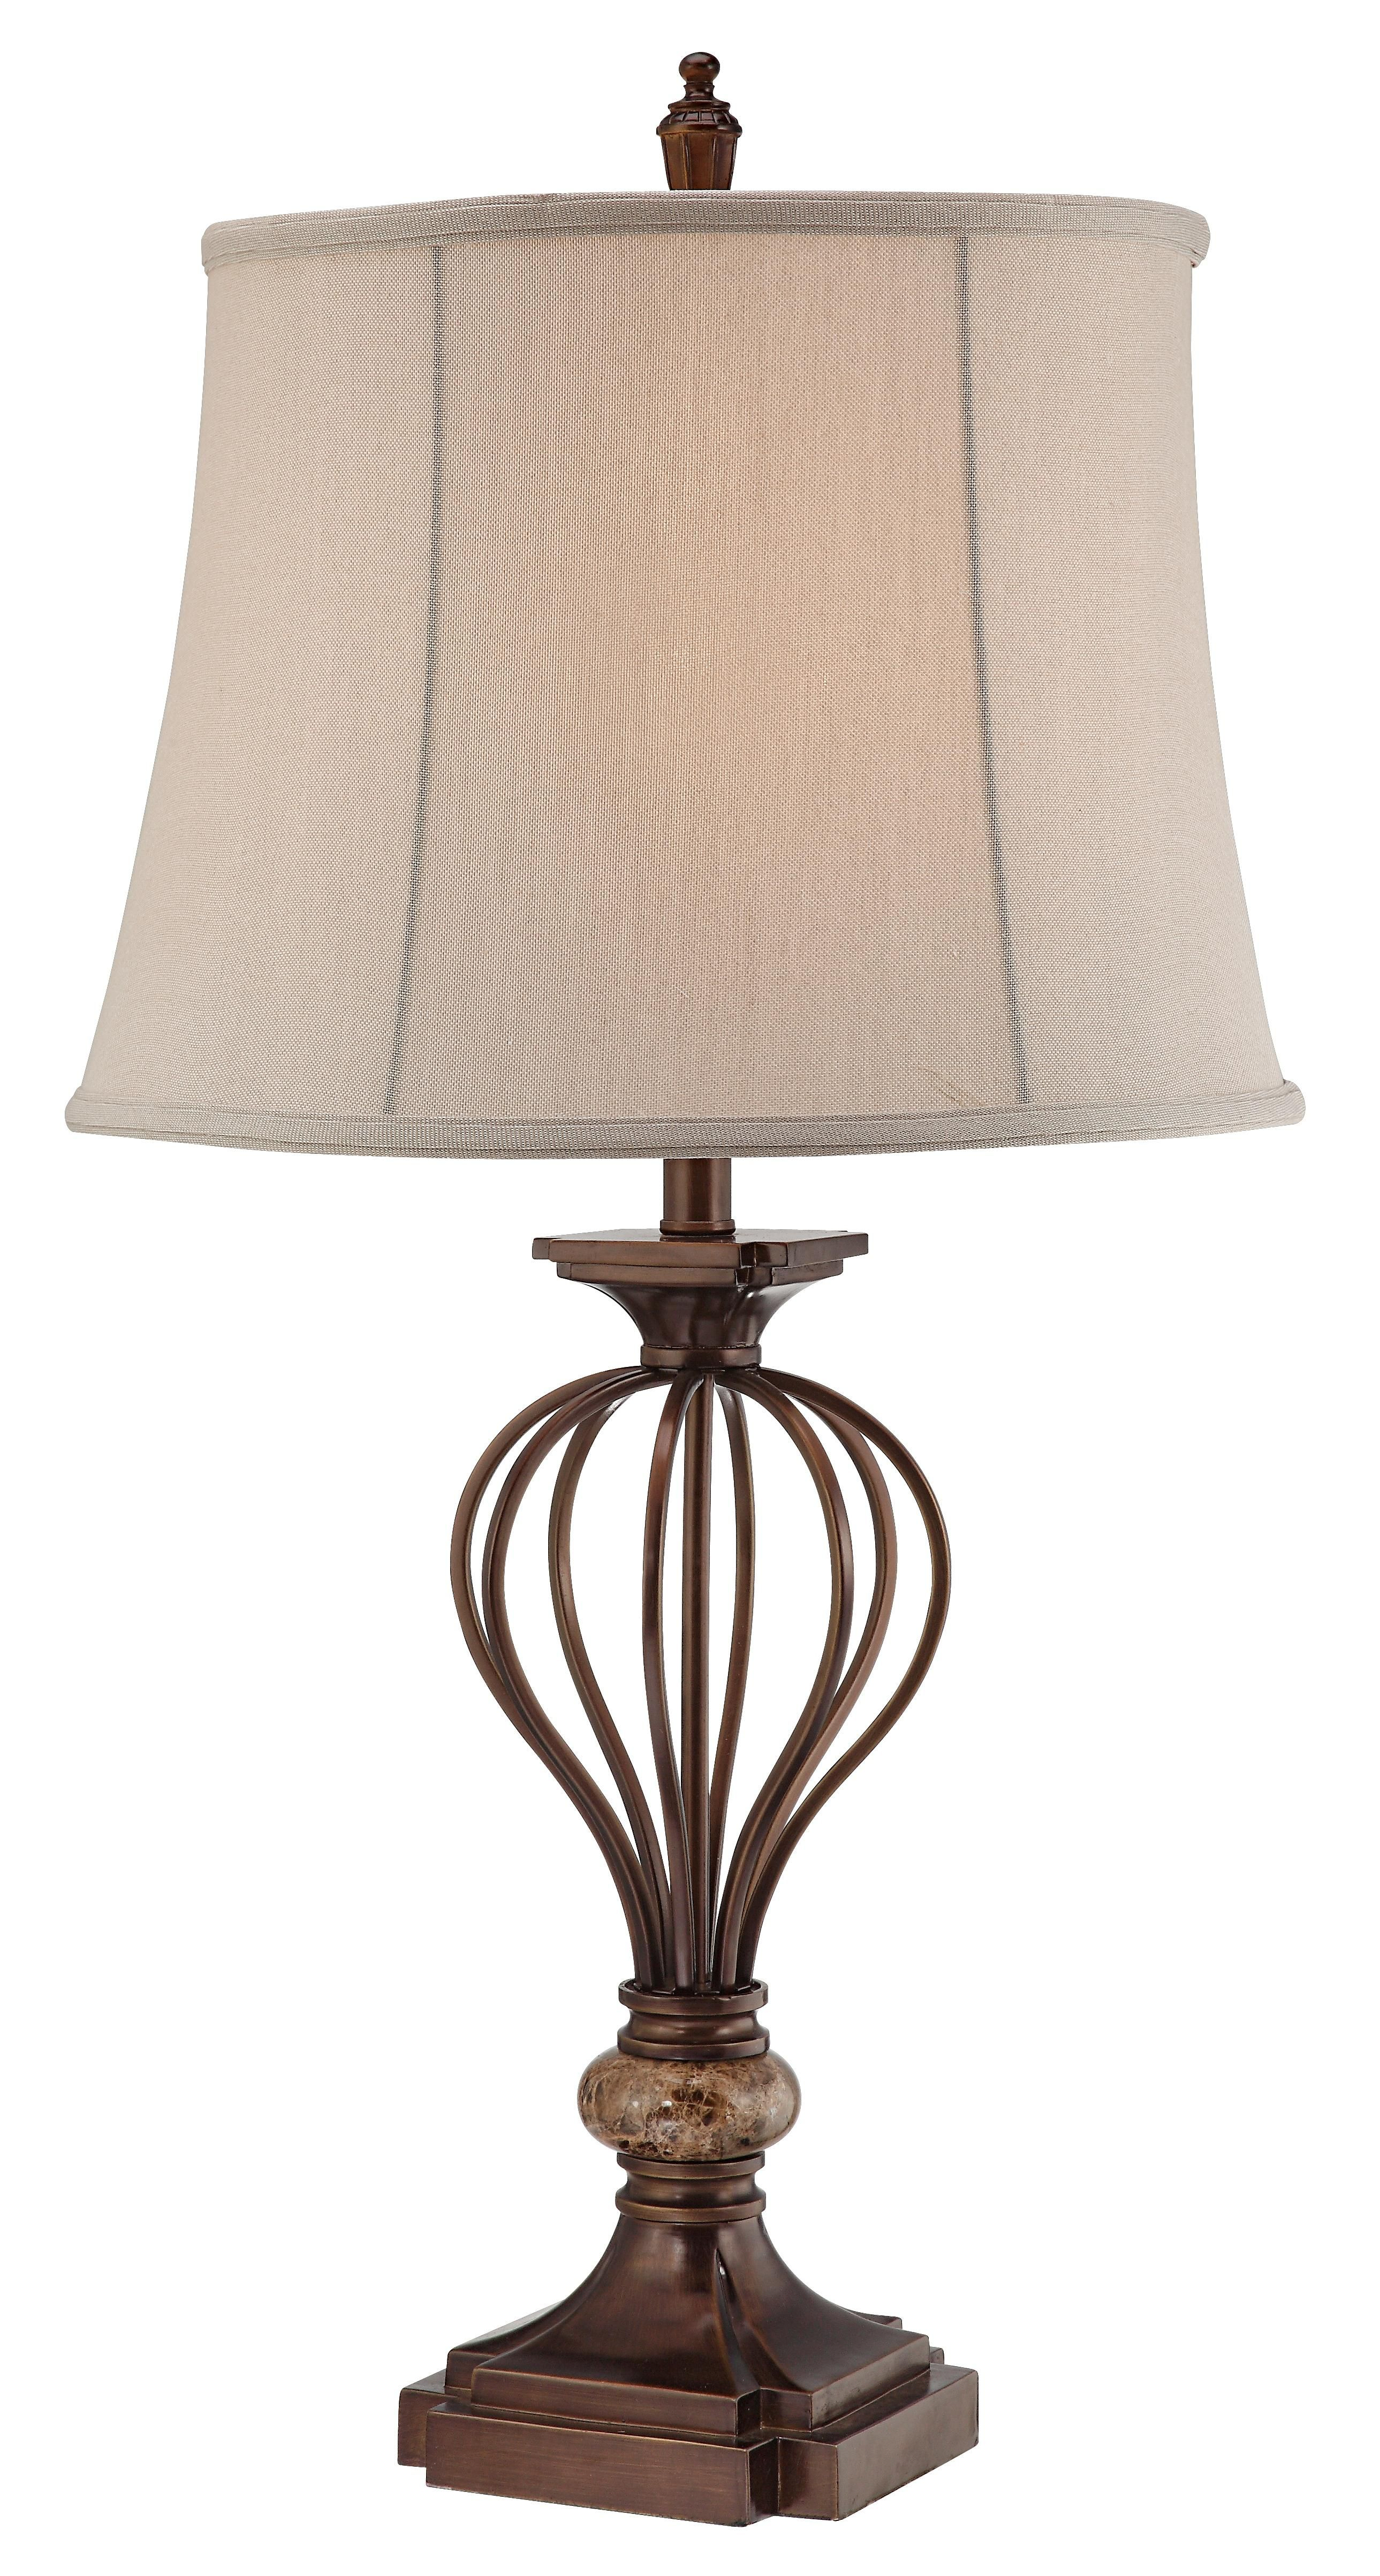 Kathy Ireland Villa Roma Open Cage Marble Accent Table Lamp M1545 Lamps Plus Marble Accent Table Table Lamp Marble Accents